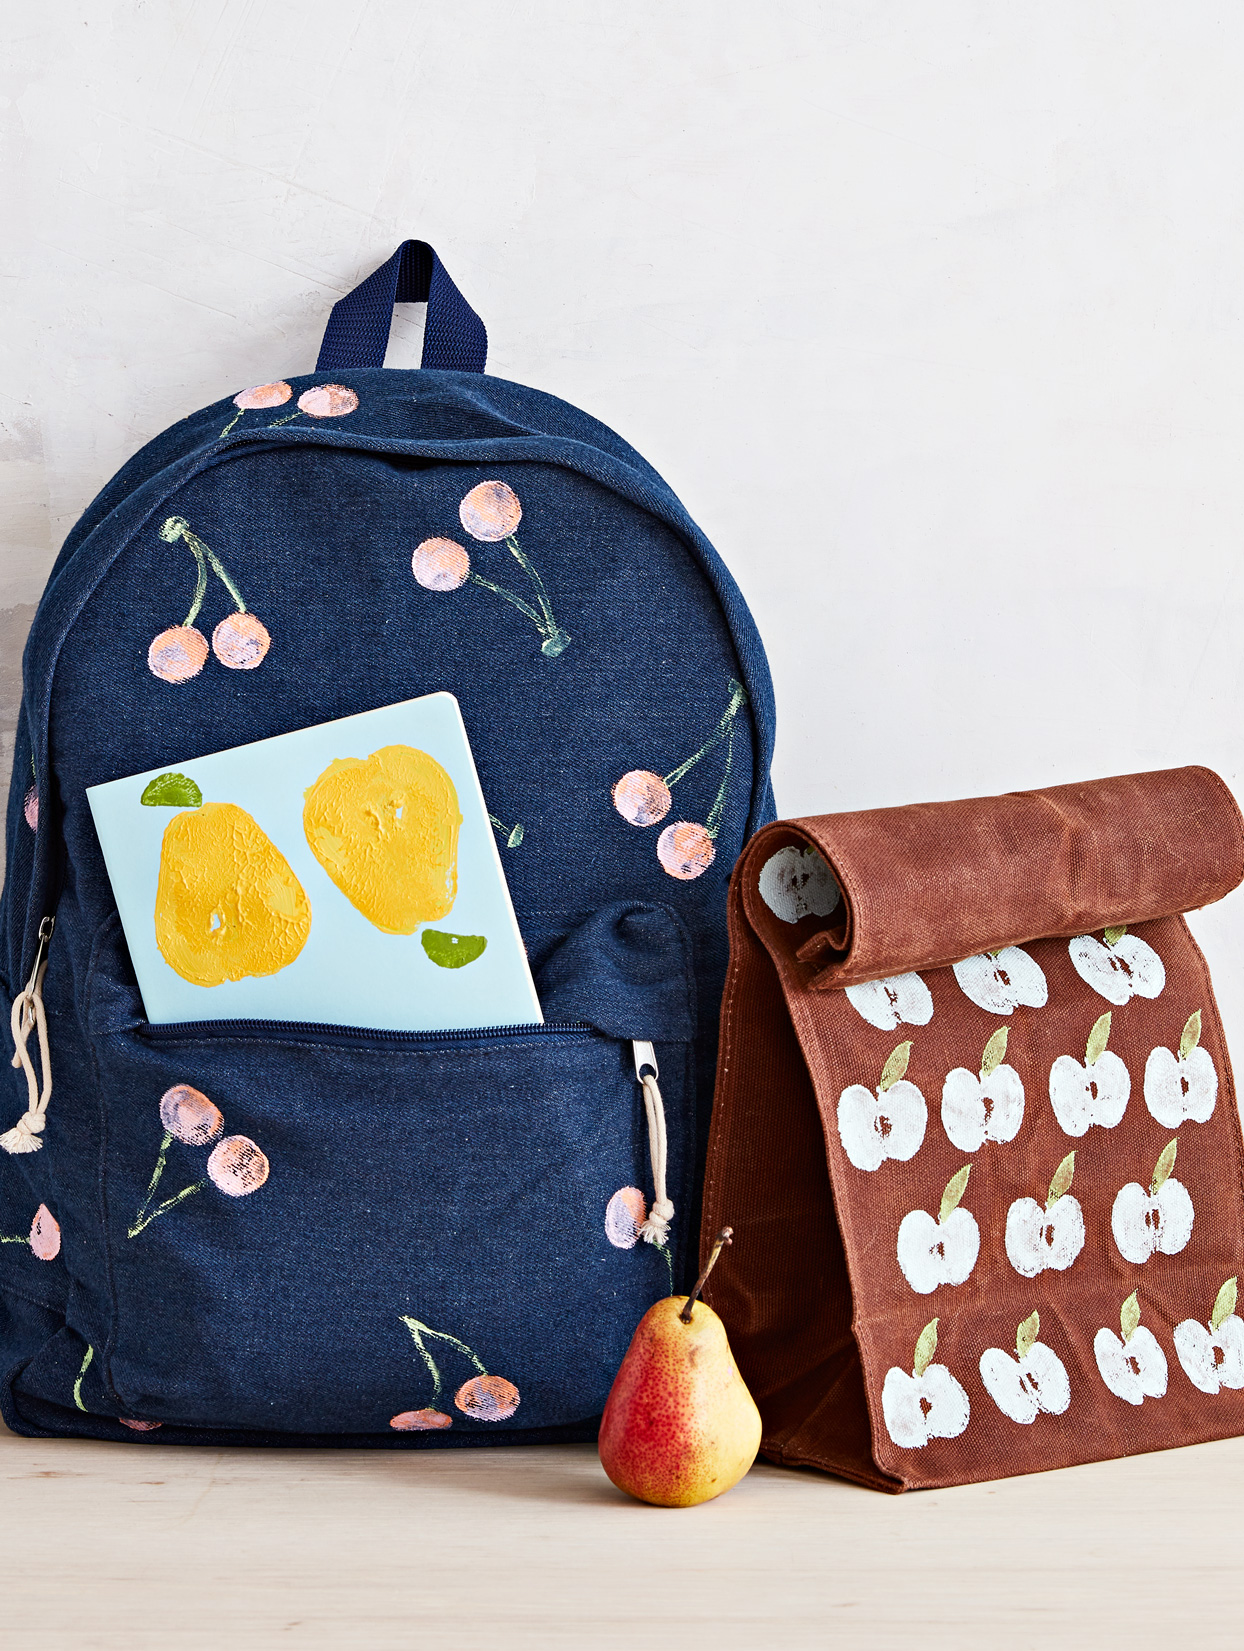 school supplies personalized with fruit and veggie stamps